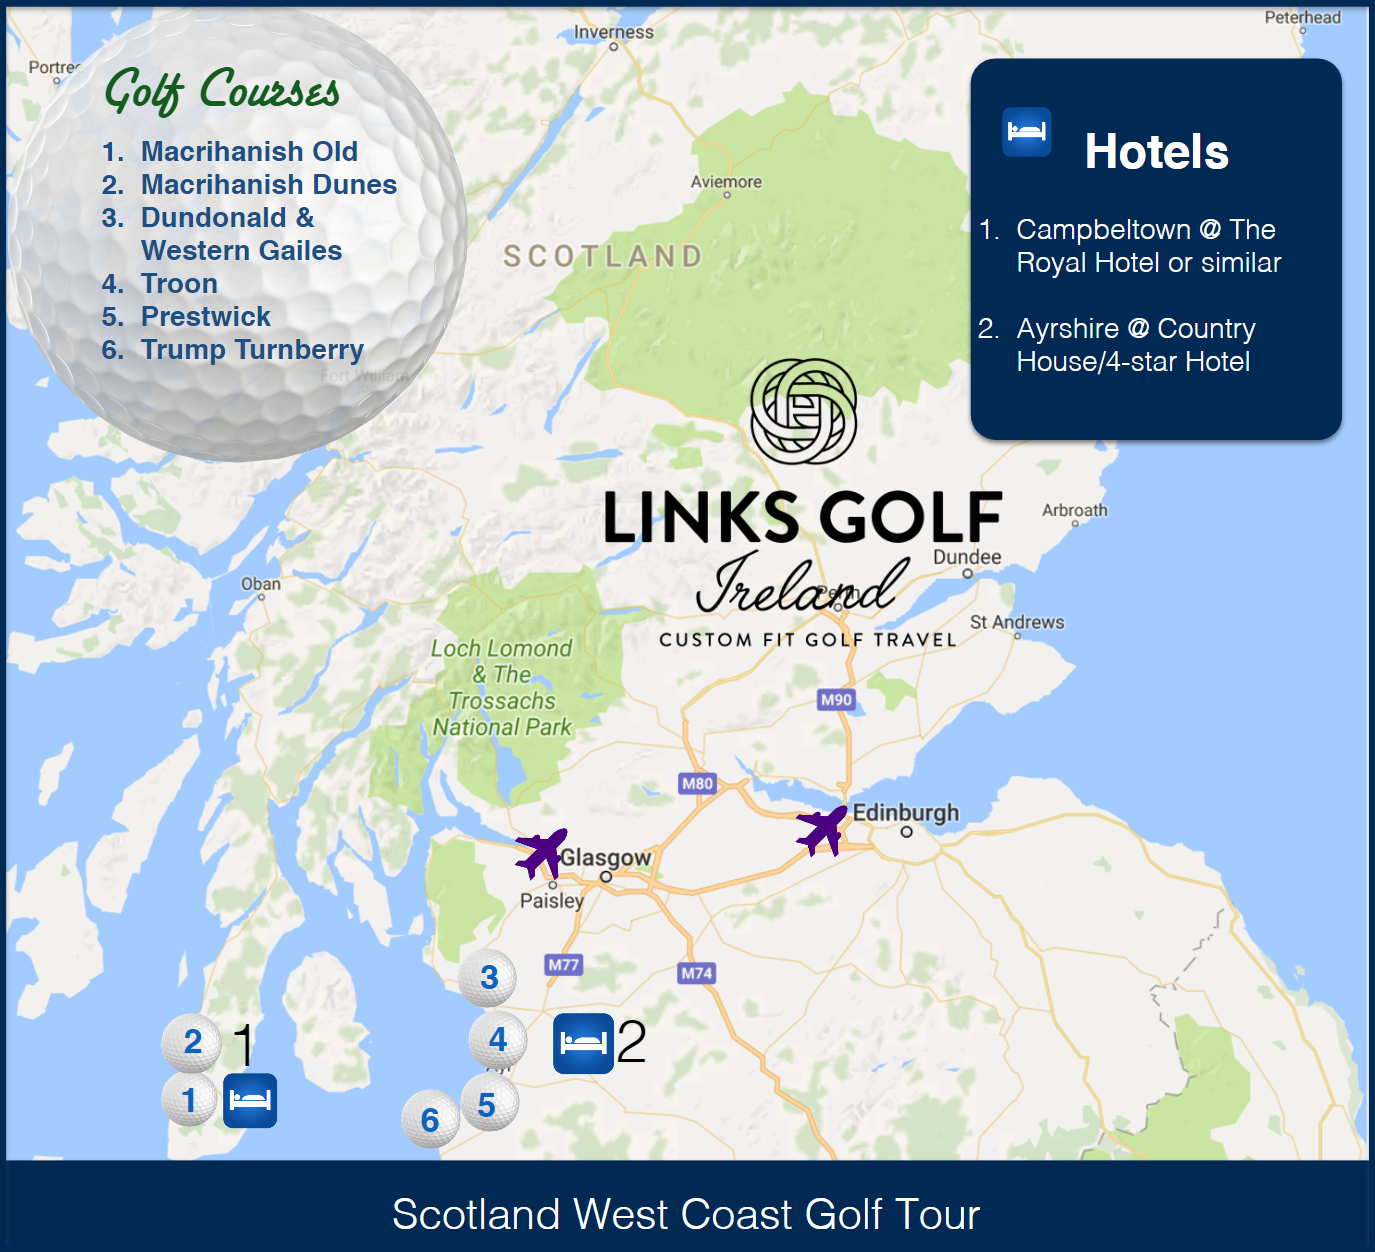 The amazing Ayrshire coast where your golf vacation will ... on auchterarder scotland map, scotland map 1500, queensferry scotland map, scotland map large, maryland golf map, irish golf map, japan golf map, new zealand golf map, england golf map, scotland cell phone coverage map, gleneagles scotland map, scotland football map, scotland map 1600, sycamore trails disc golf map, louisiana golf map, mexico golf map, australia golf map, united states golf map, scottish golf map, iceland golf map,